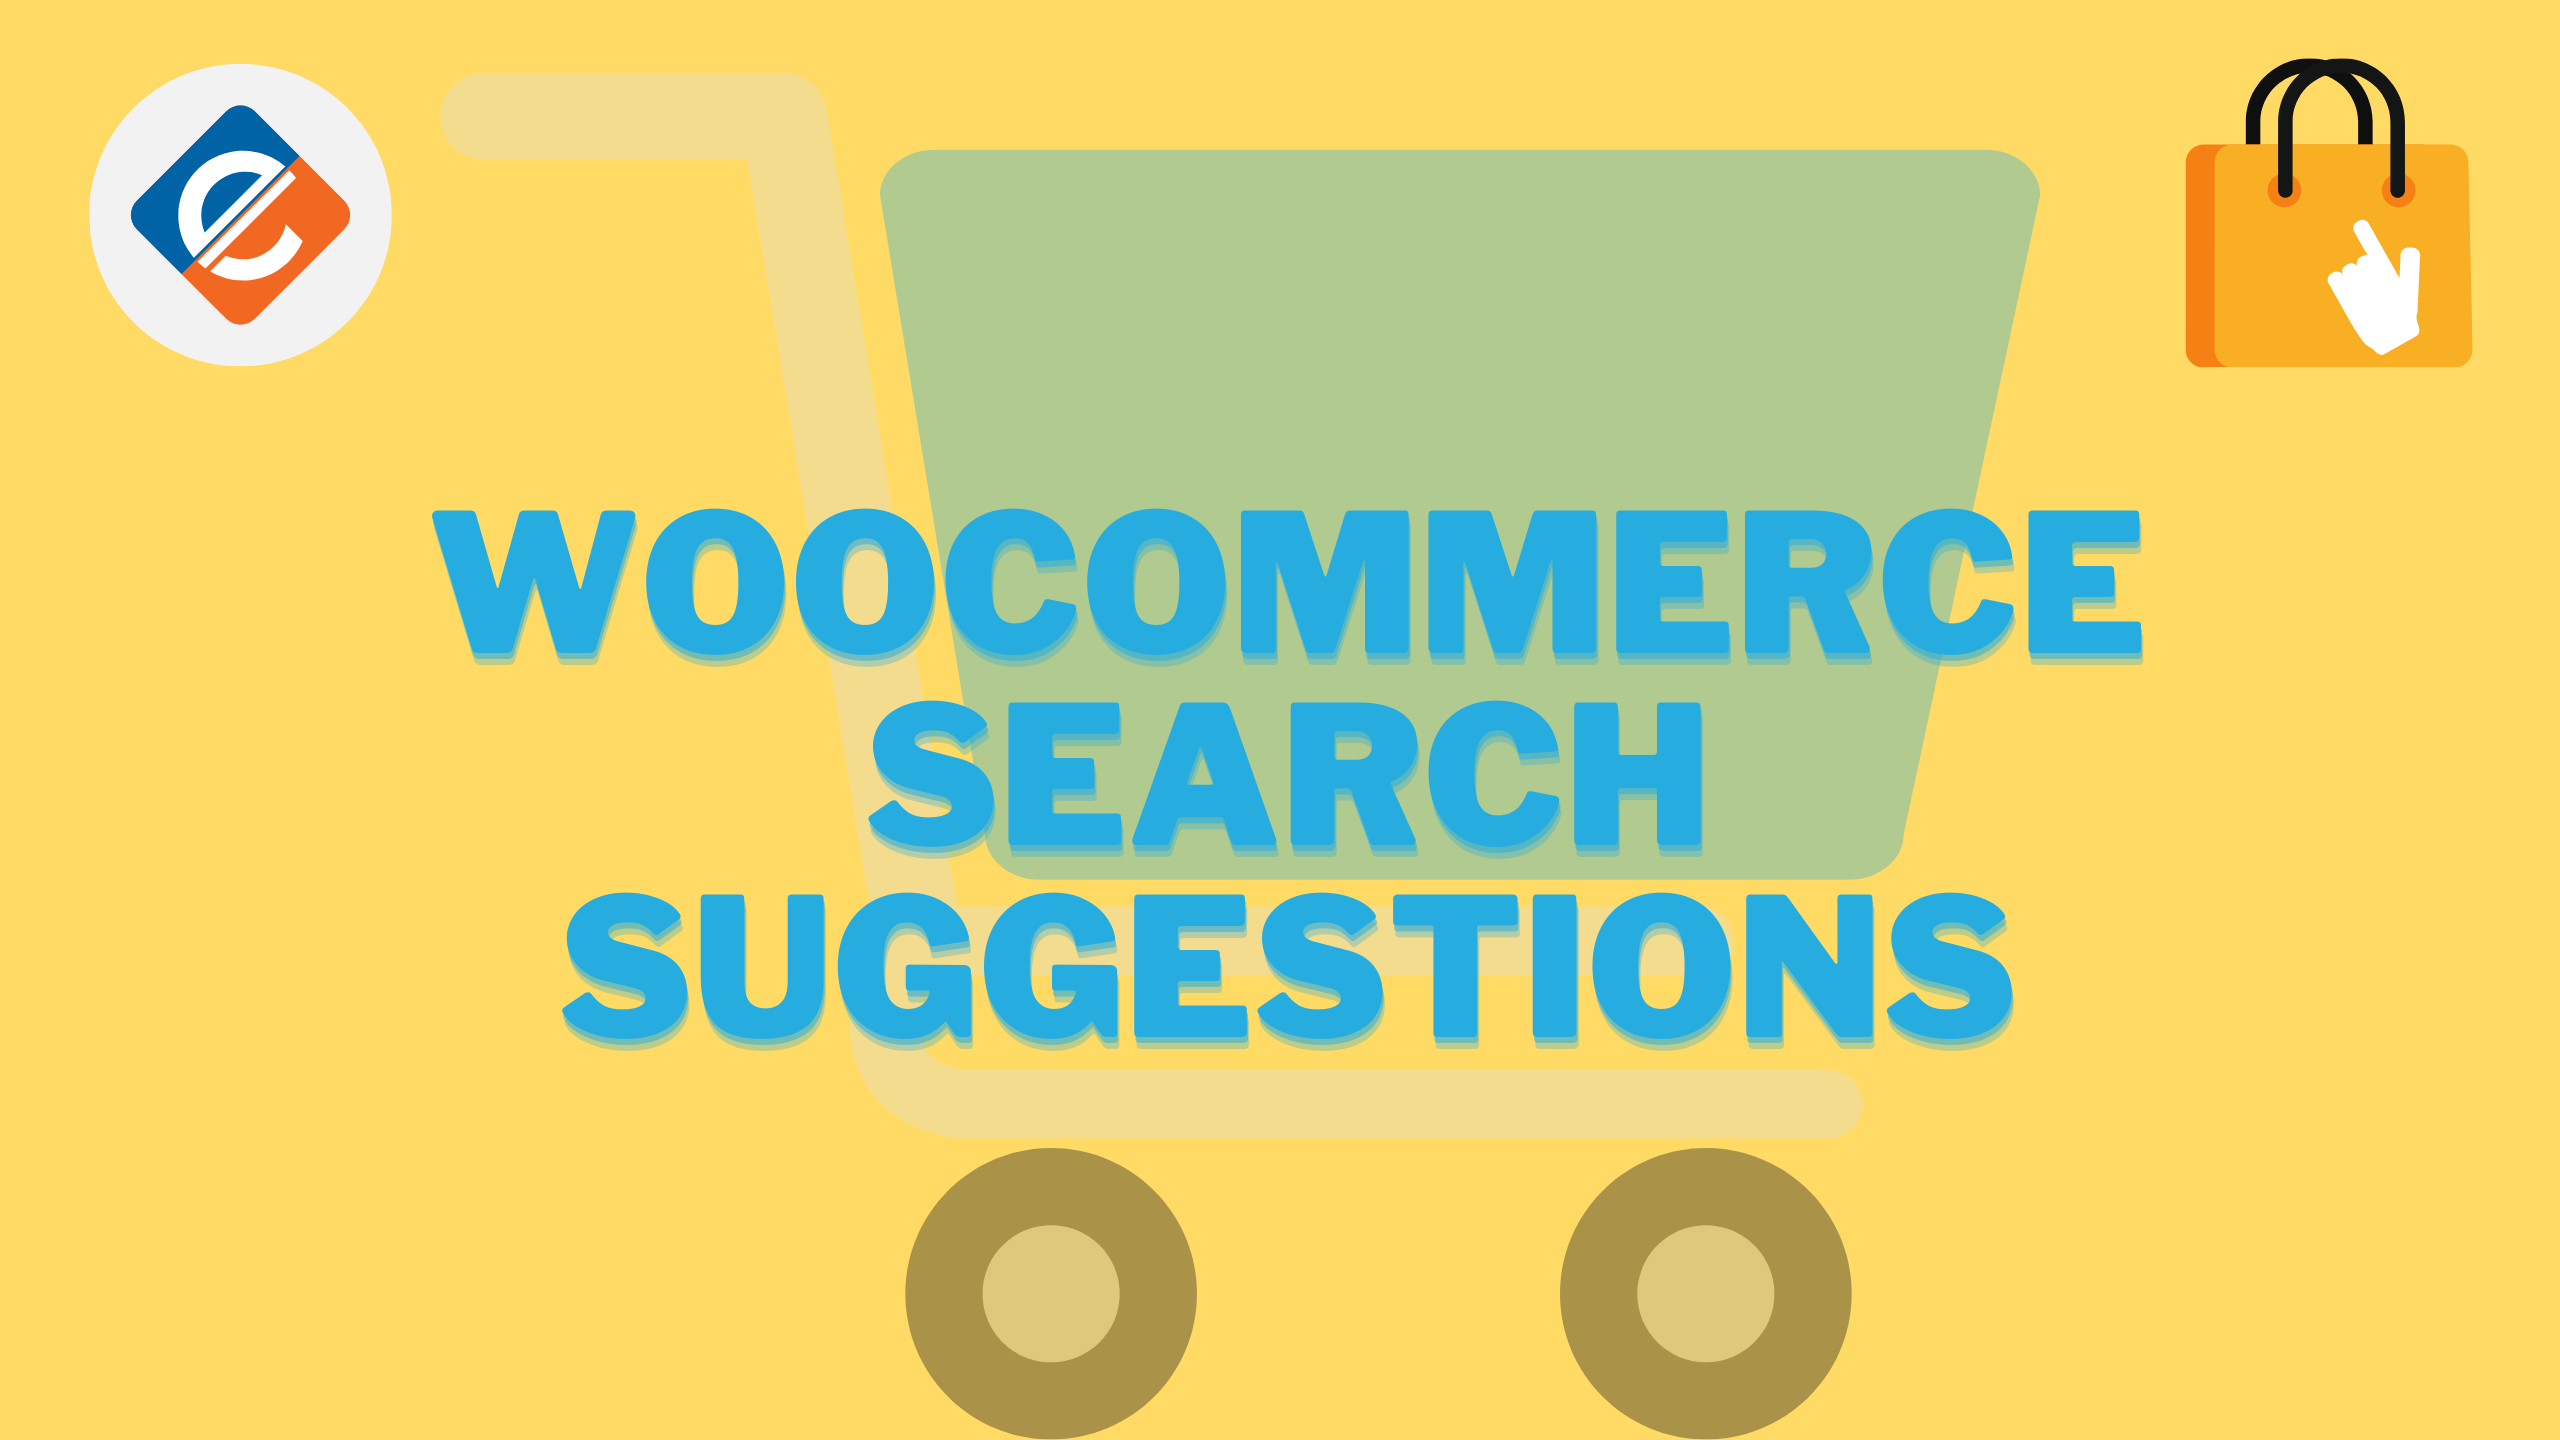 Woocommerce Search Suggestions